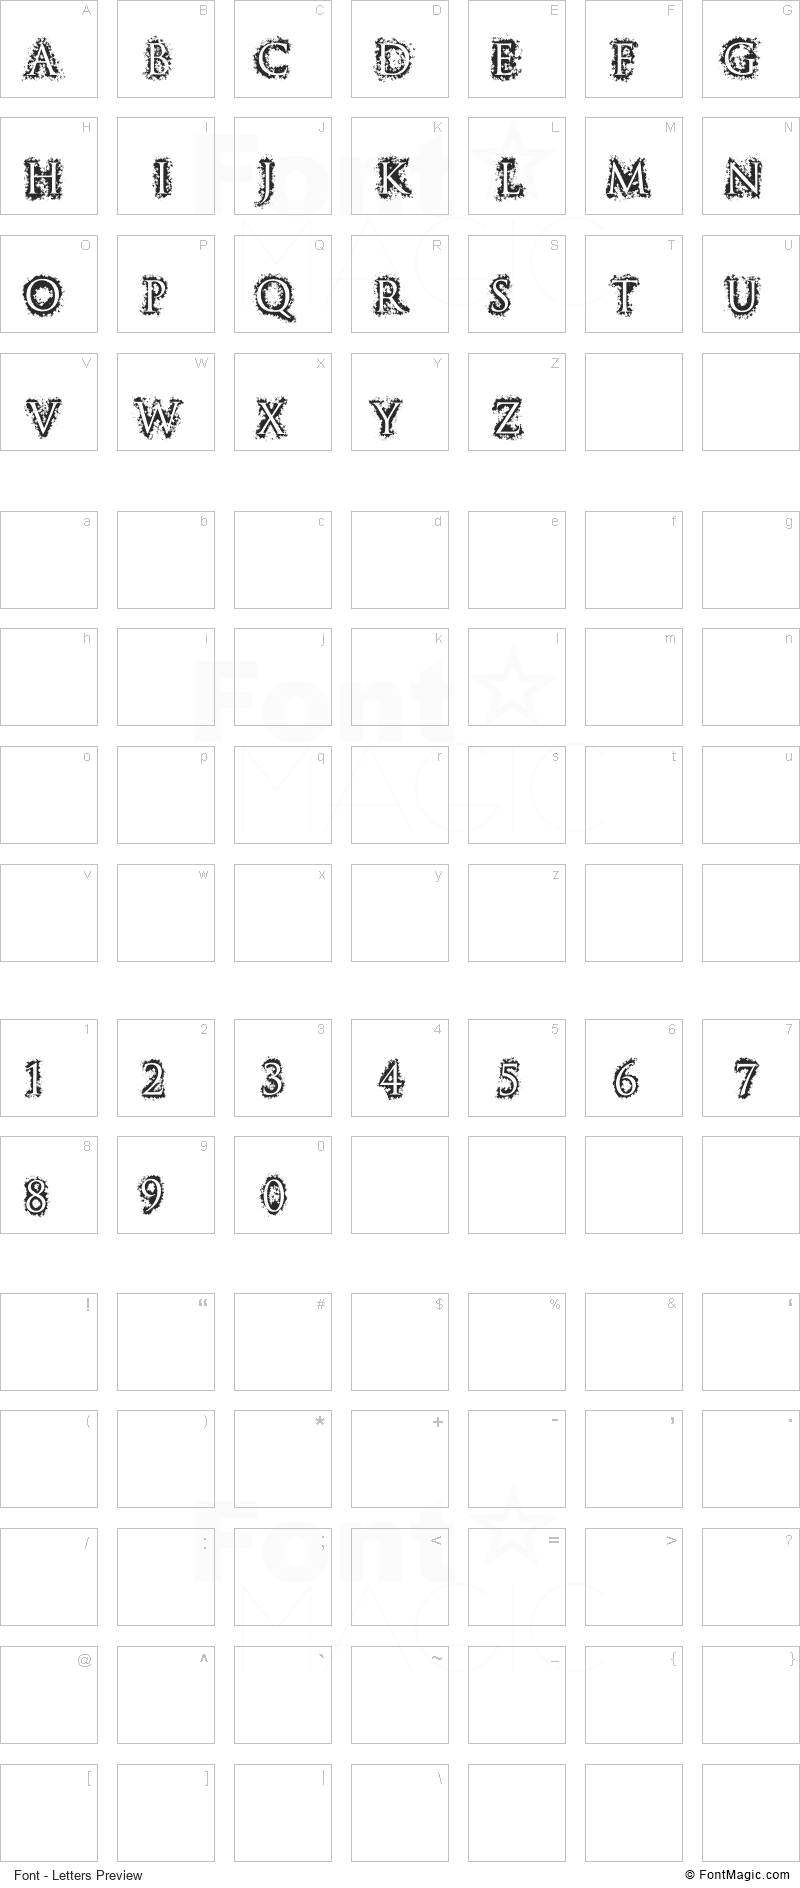 Stucco Font - All Latters Preview Chart